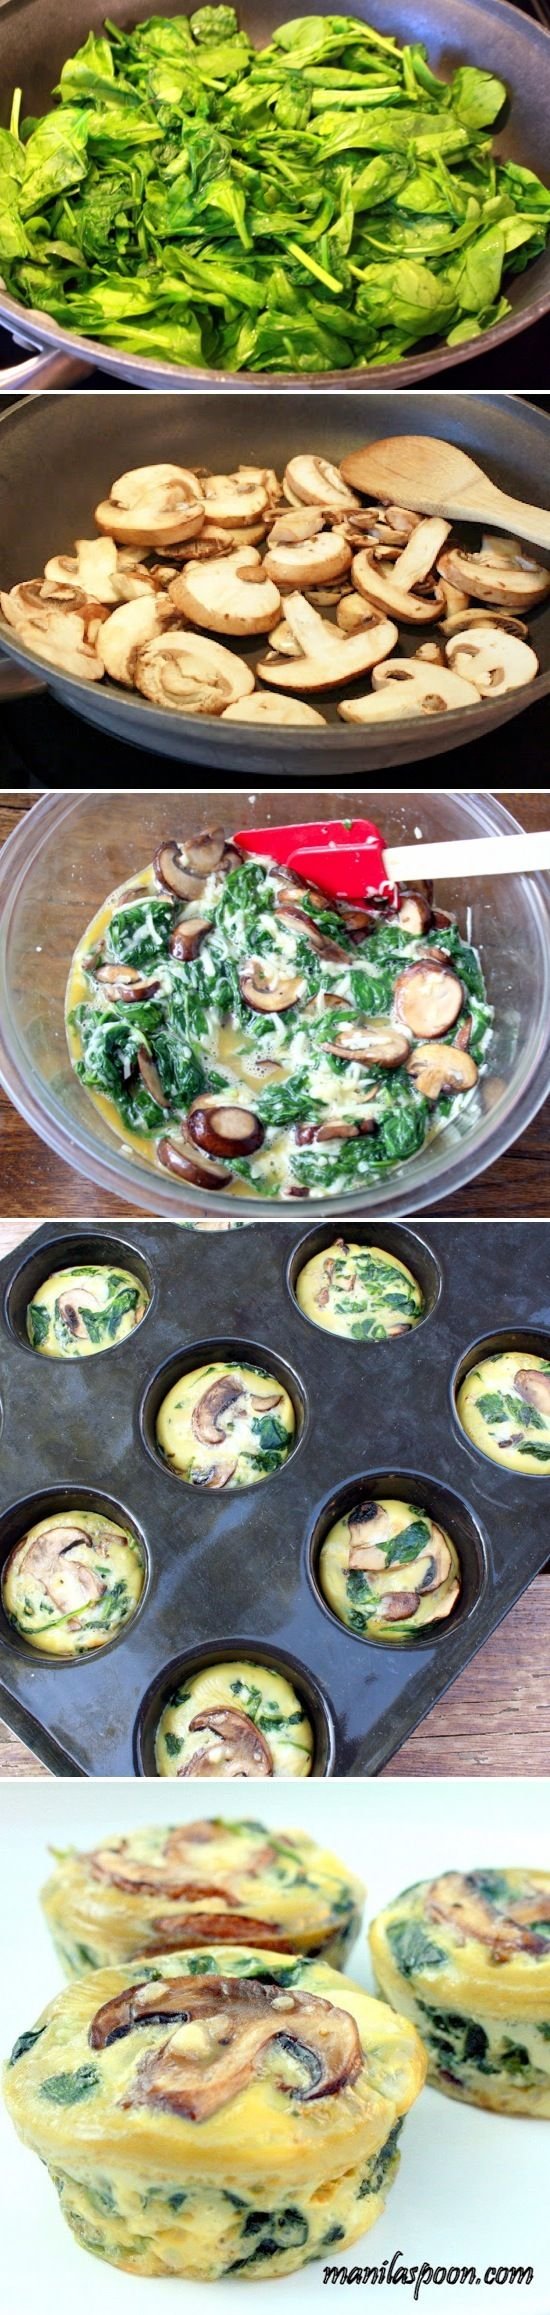 Spinach Egg Cups -  cook them all then FREEZE in 2's for easy microwaving later in the week.  Brekkie & protein SNACKS